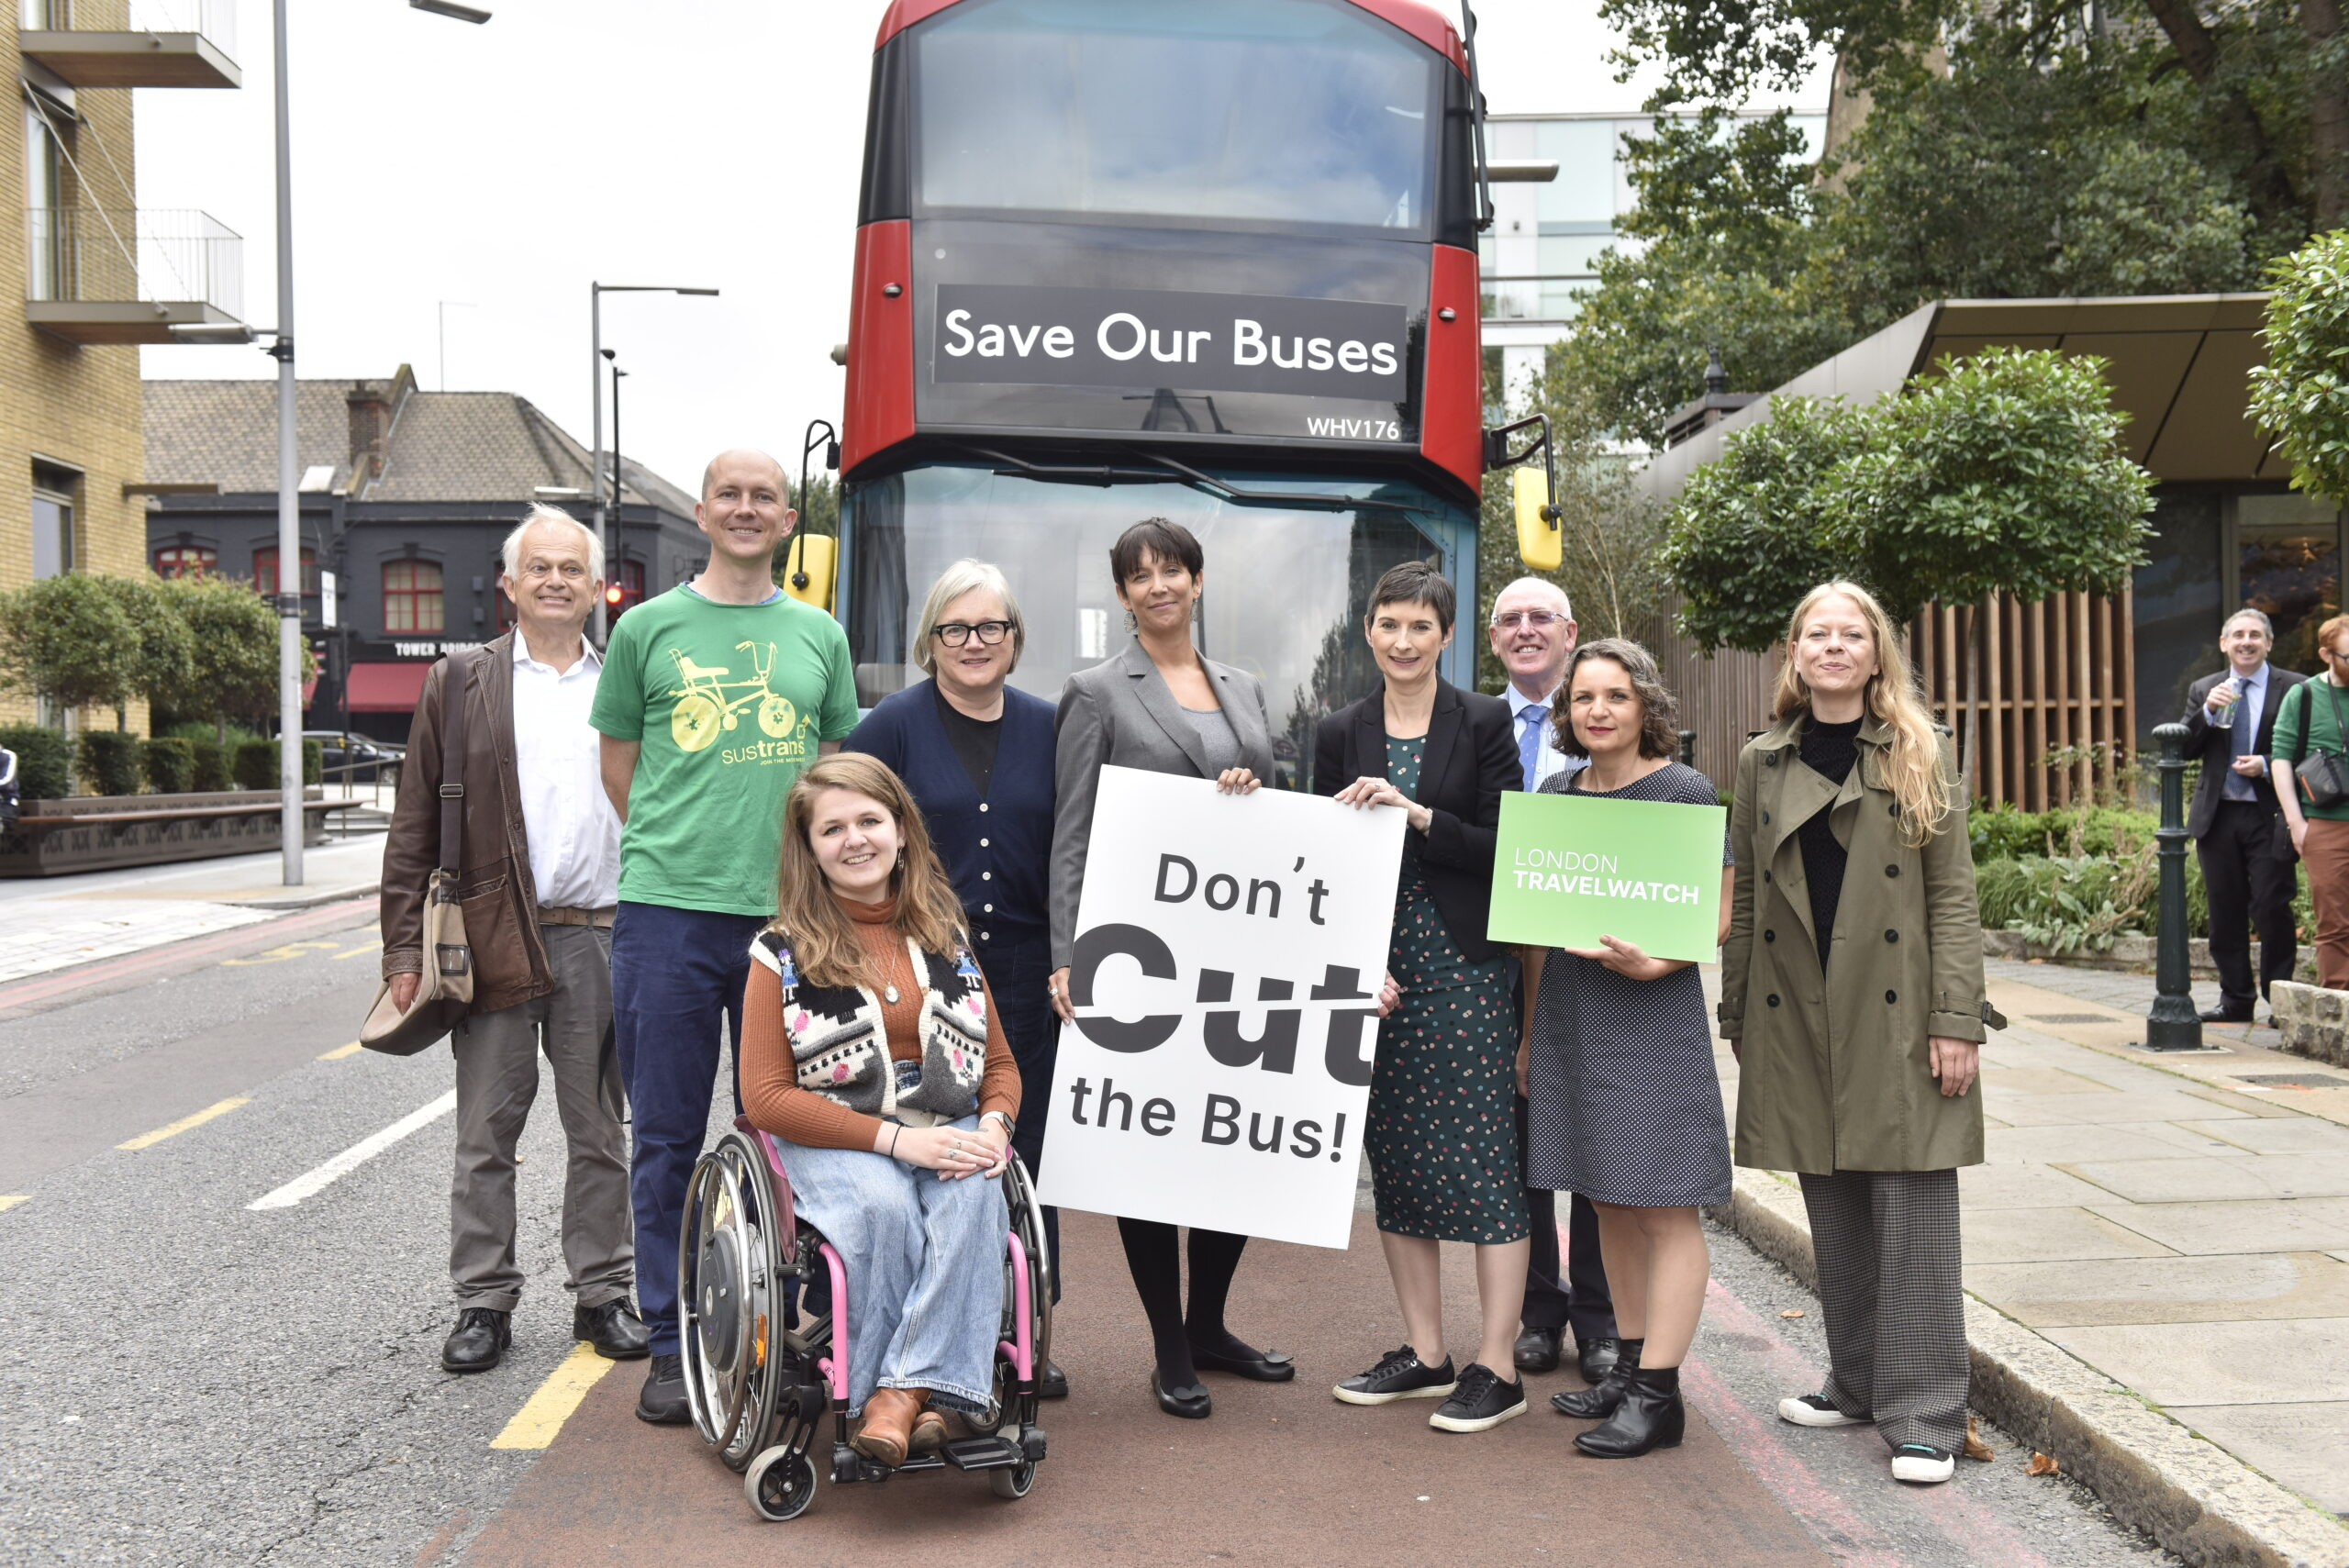 London TravelWatch bus campaign launch group photo